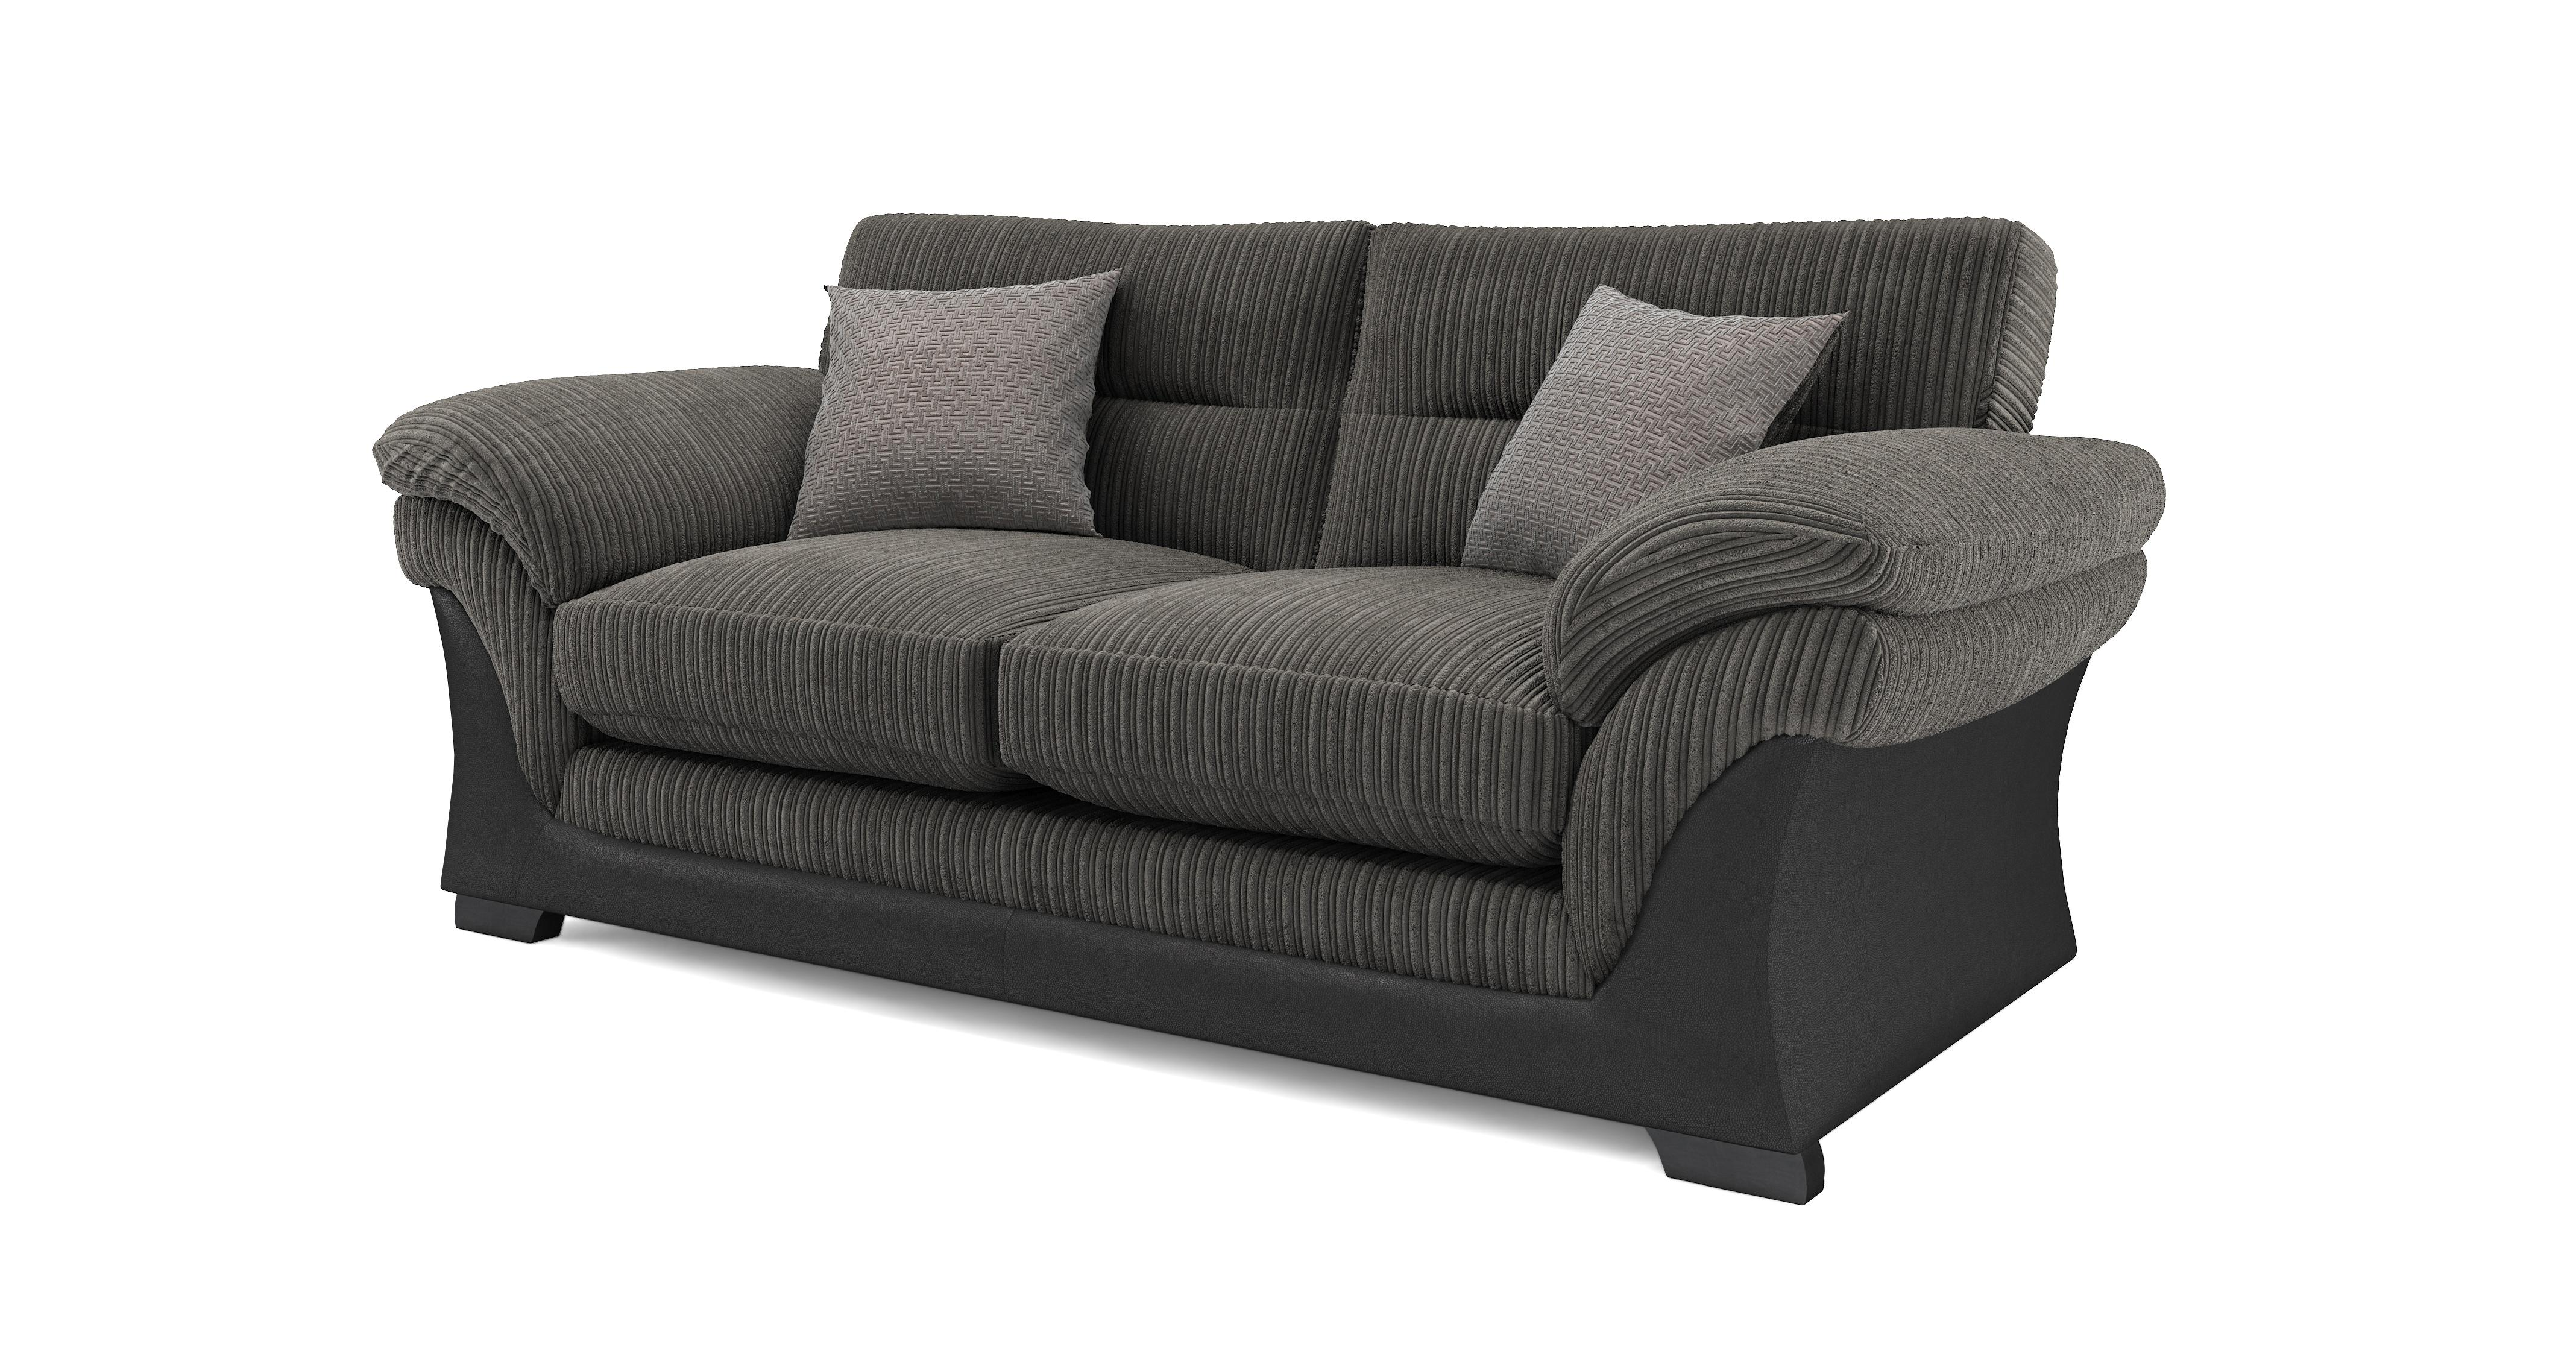 dfs red leather corner sofa bed cool sofas ireland recliner. www redglobalmx org. oakland ...